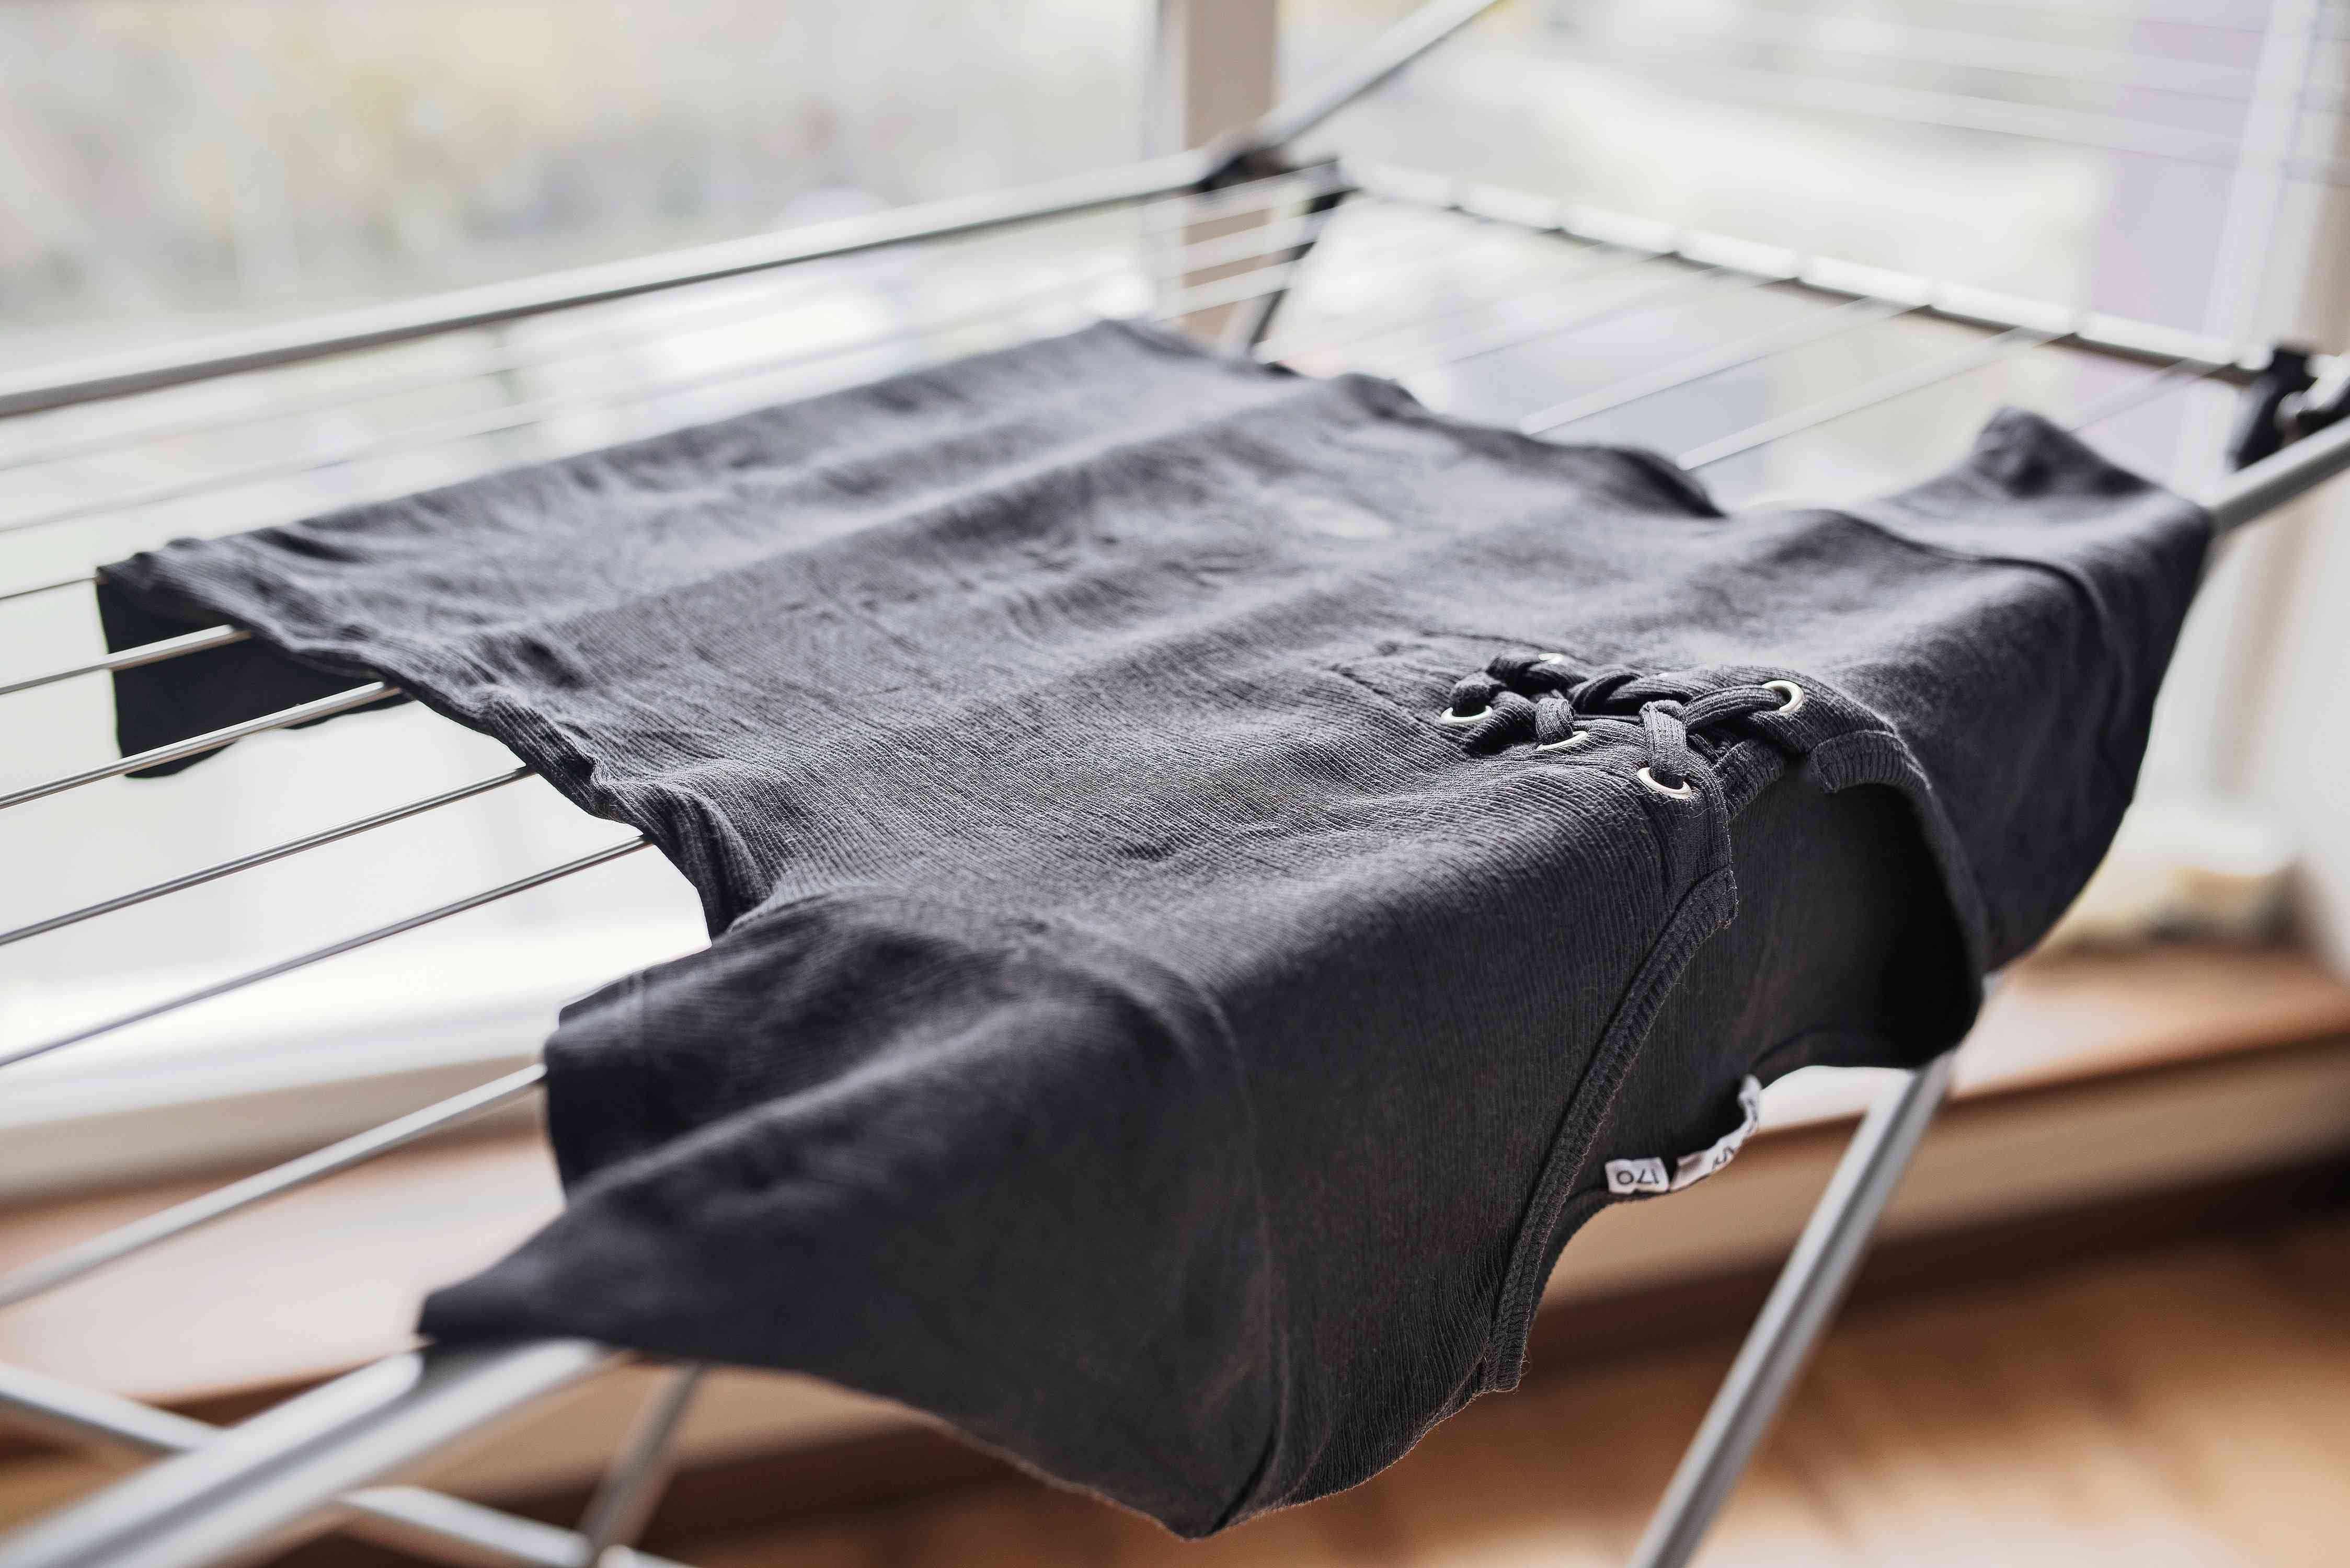 Black shirt with correction fluid stain air drying on rack